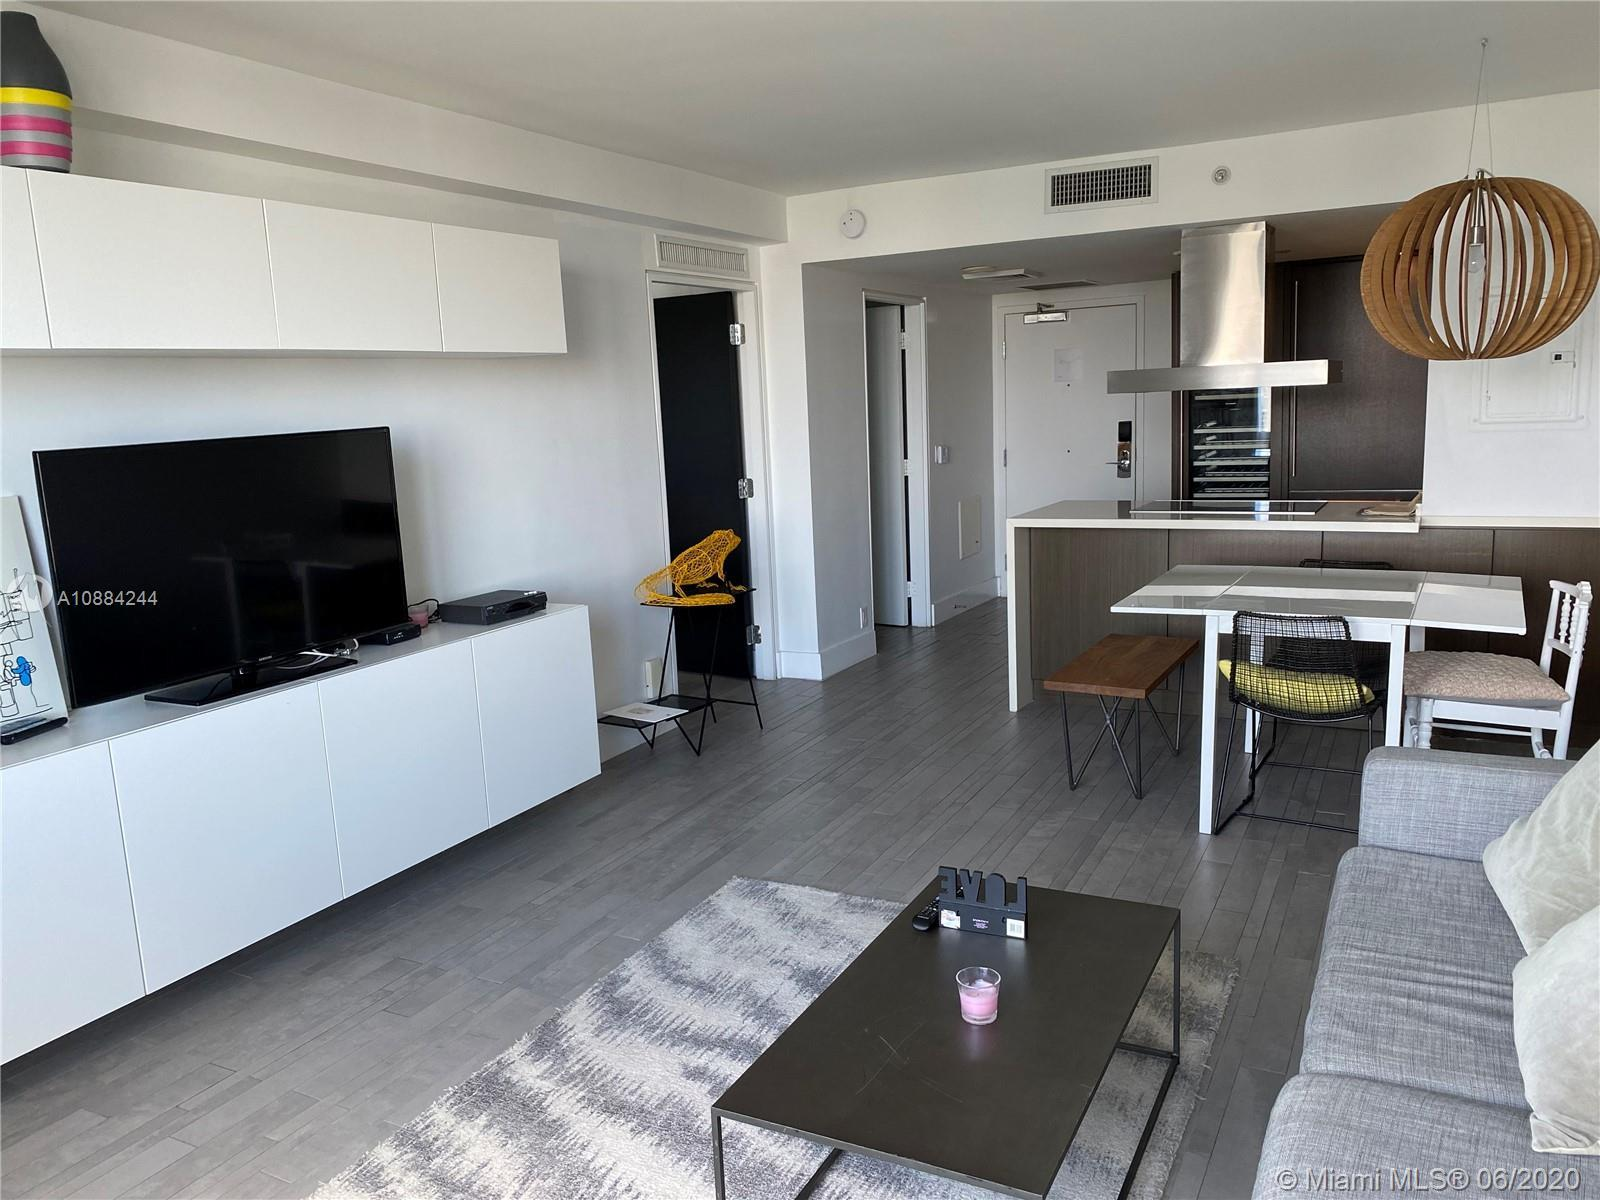 Exclusive & modern Unit at MONDRIAN, in the heart of Miami Beach. Enjoy fully furnished, turn-key co